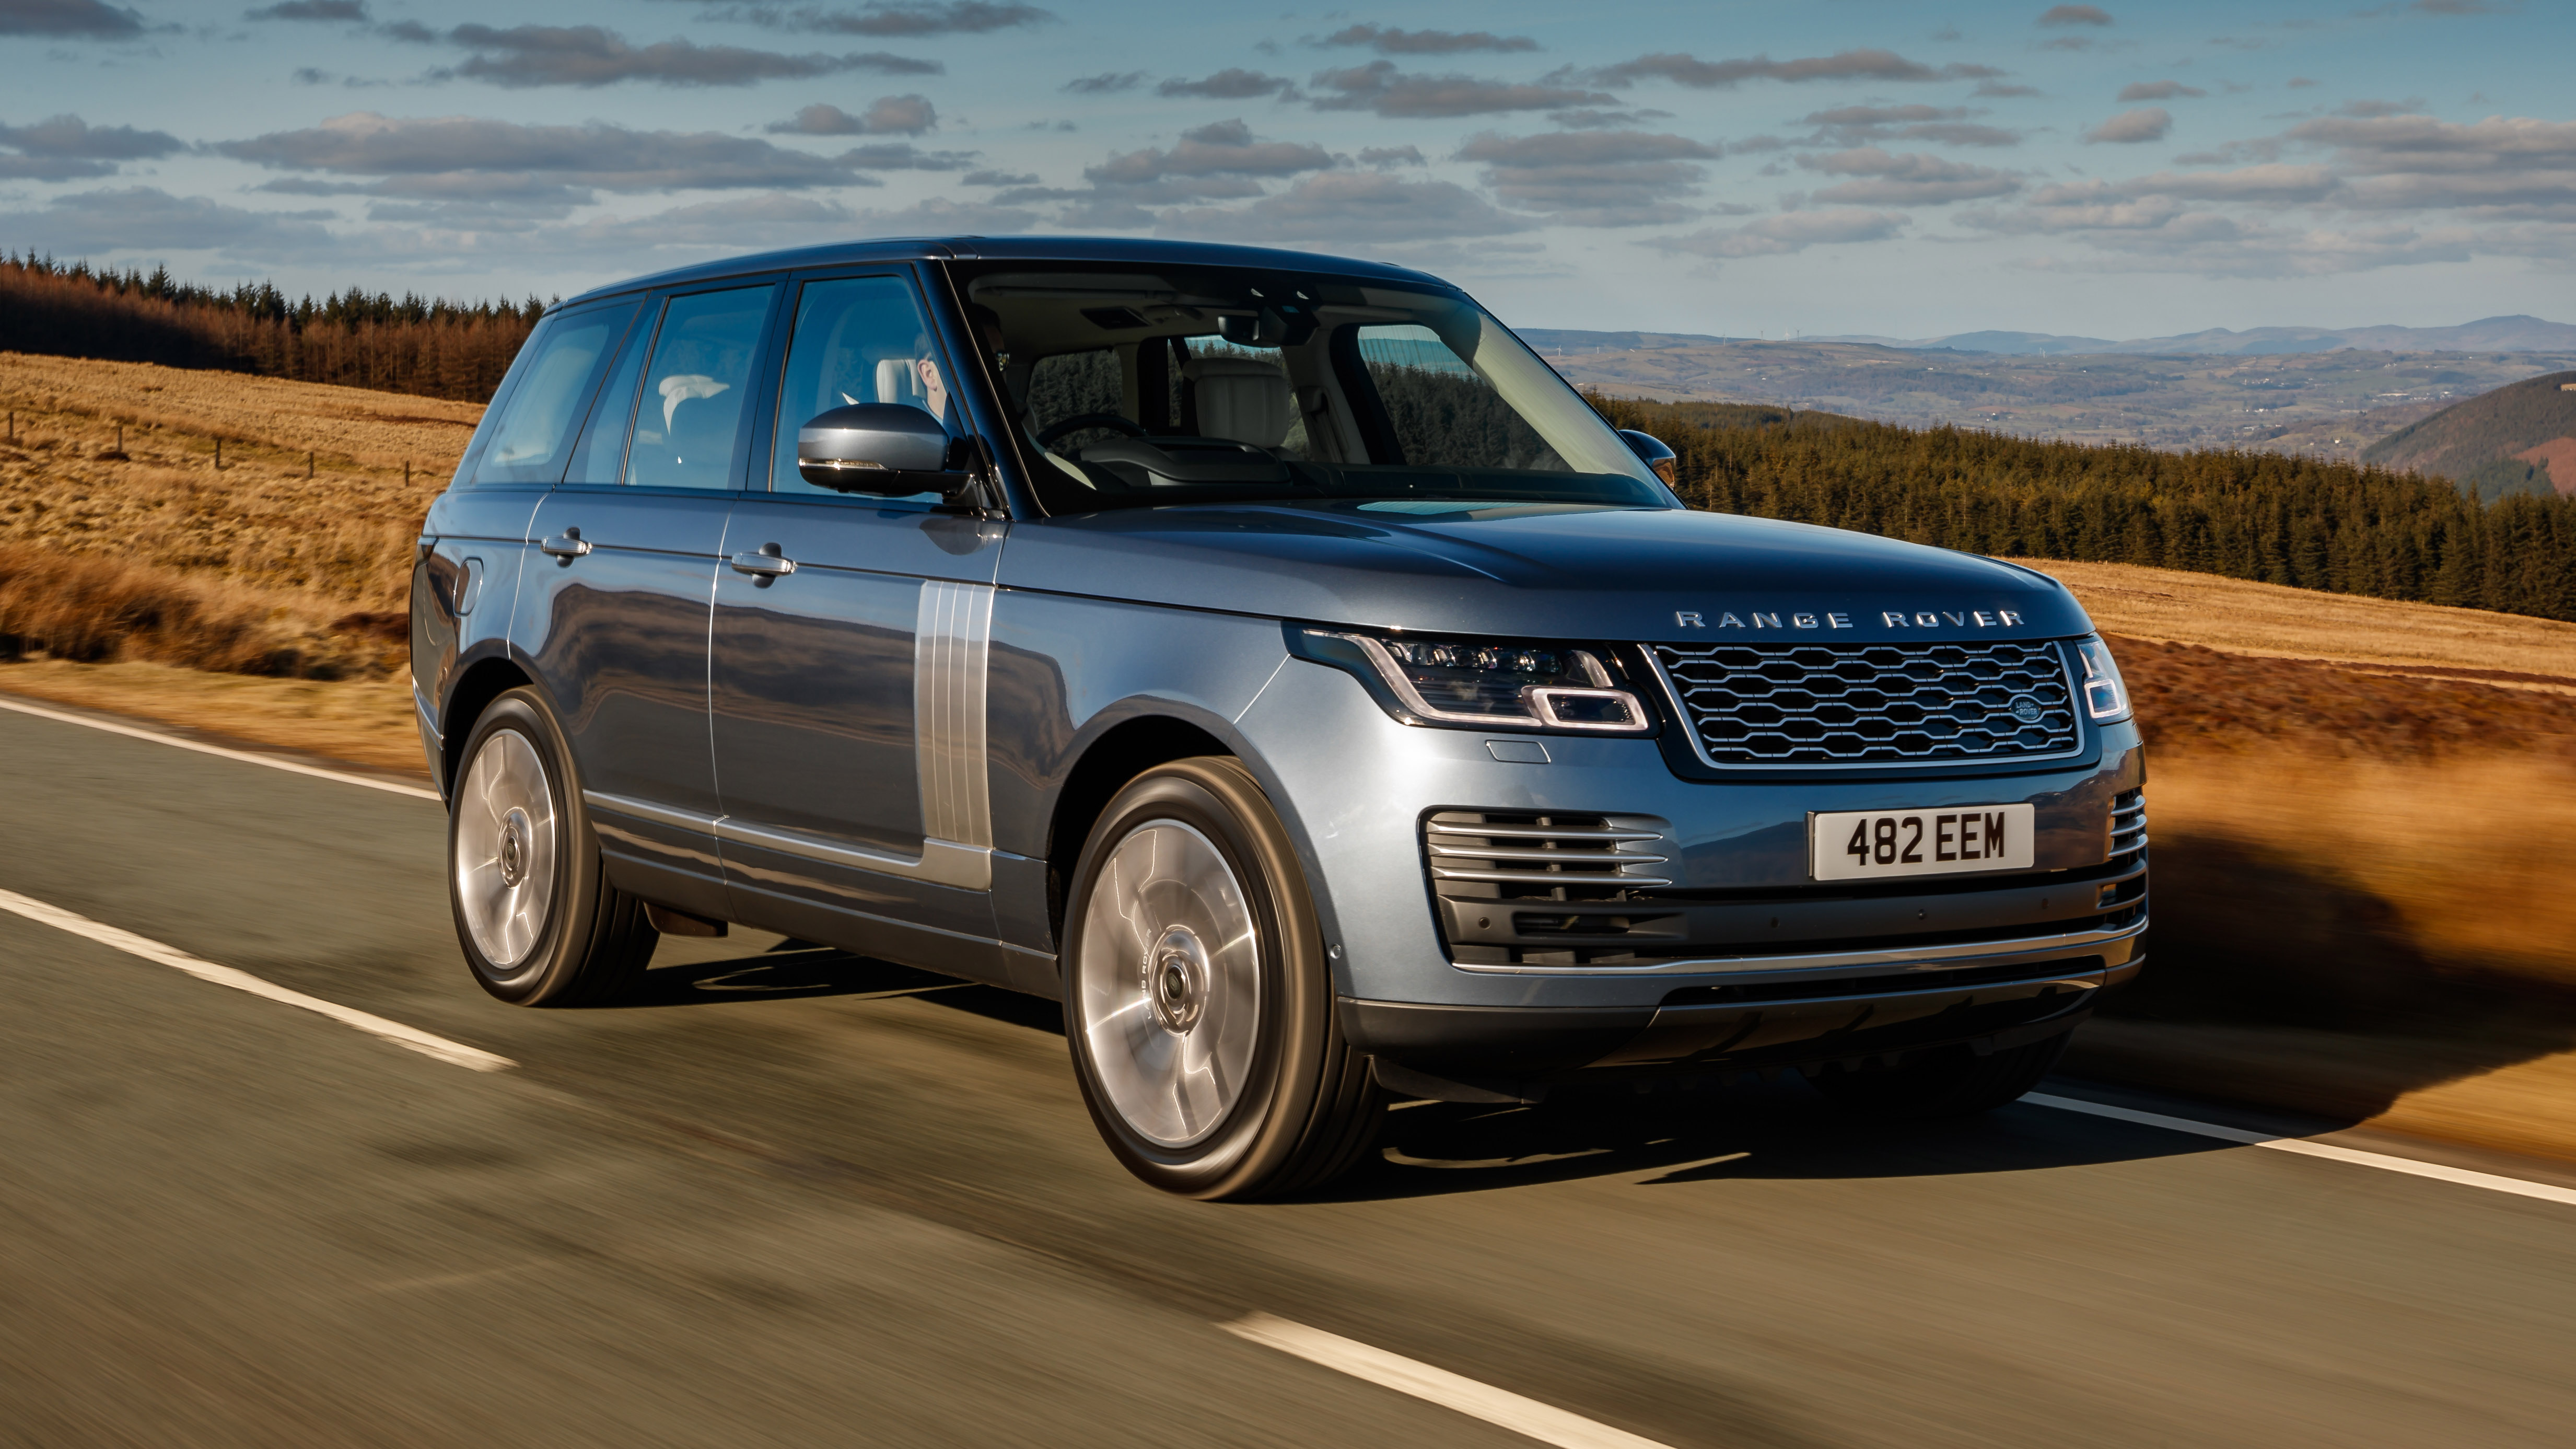 motor rear news cheap land test first rover view en trend civilized beast discovery parked landrover